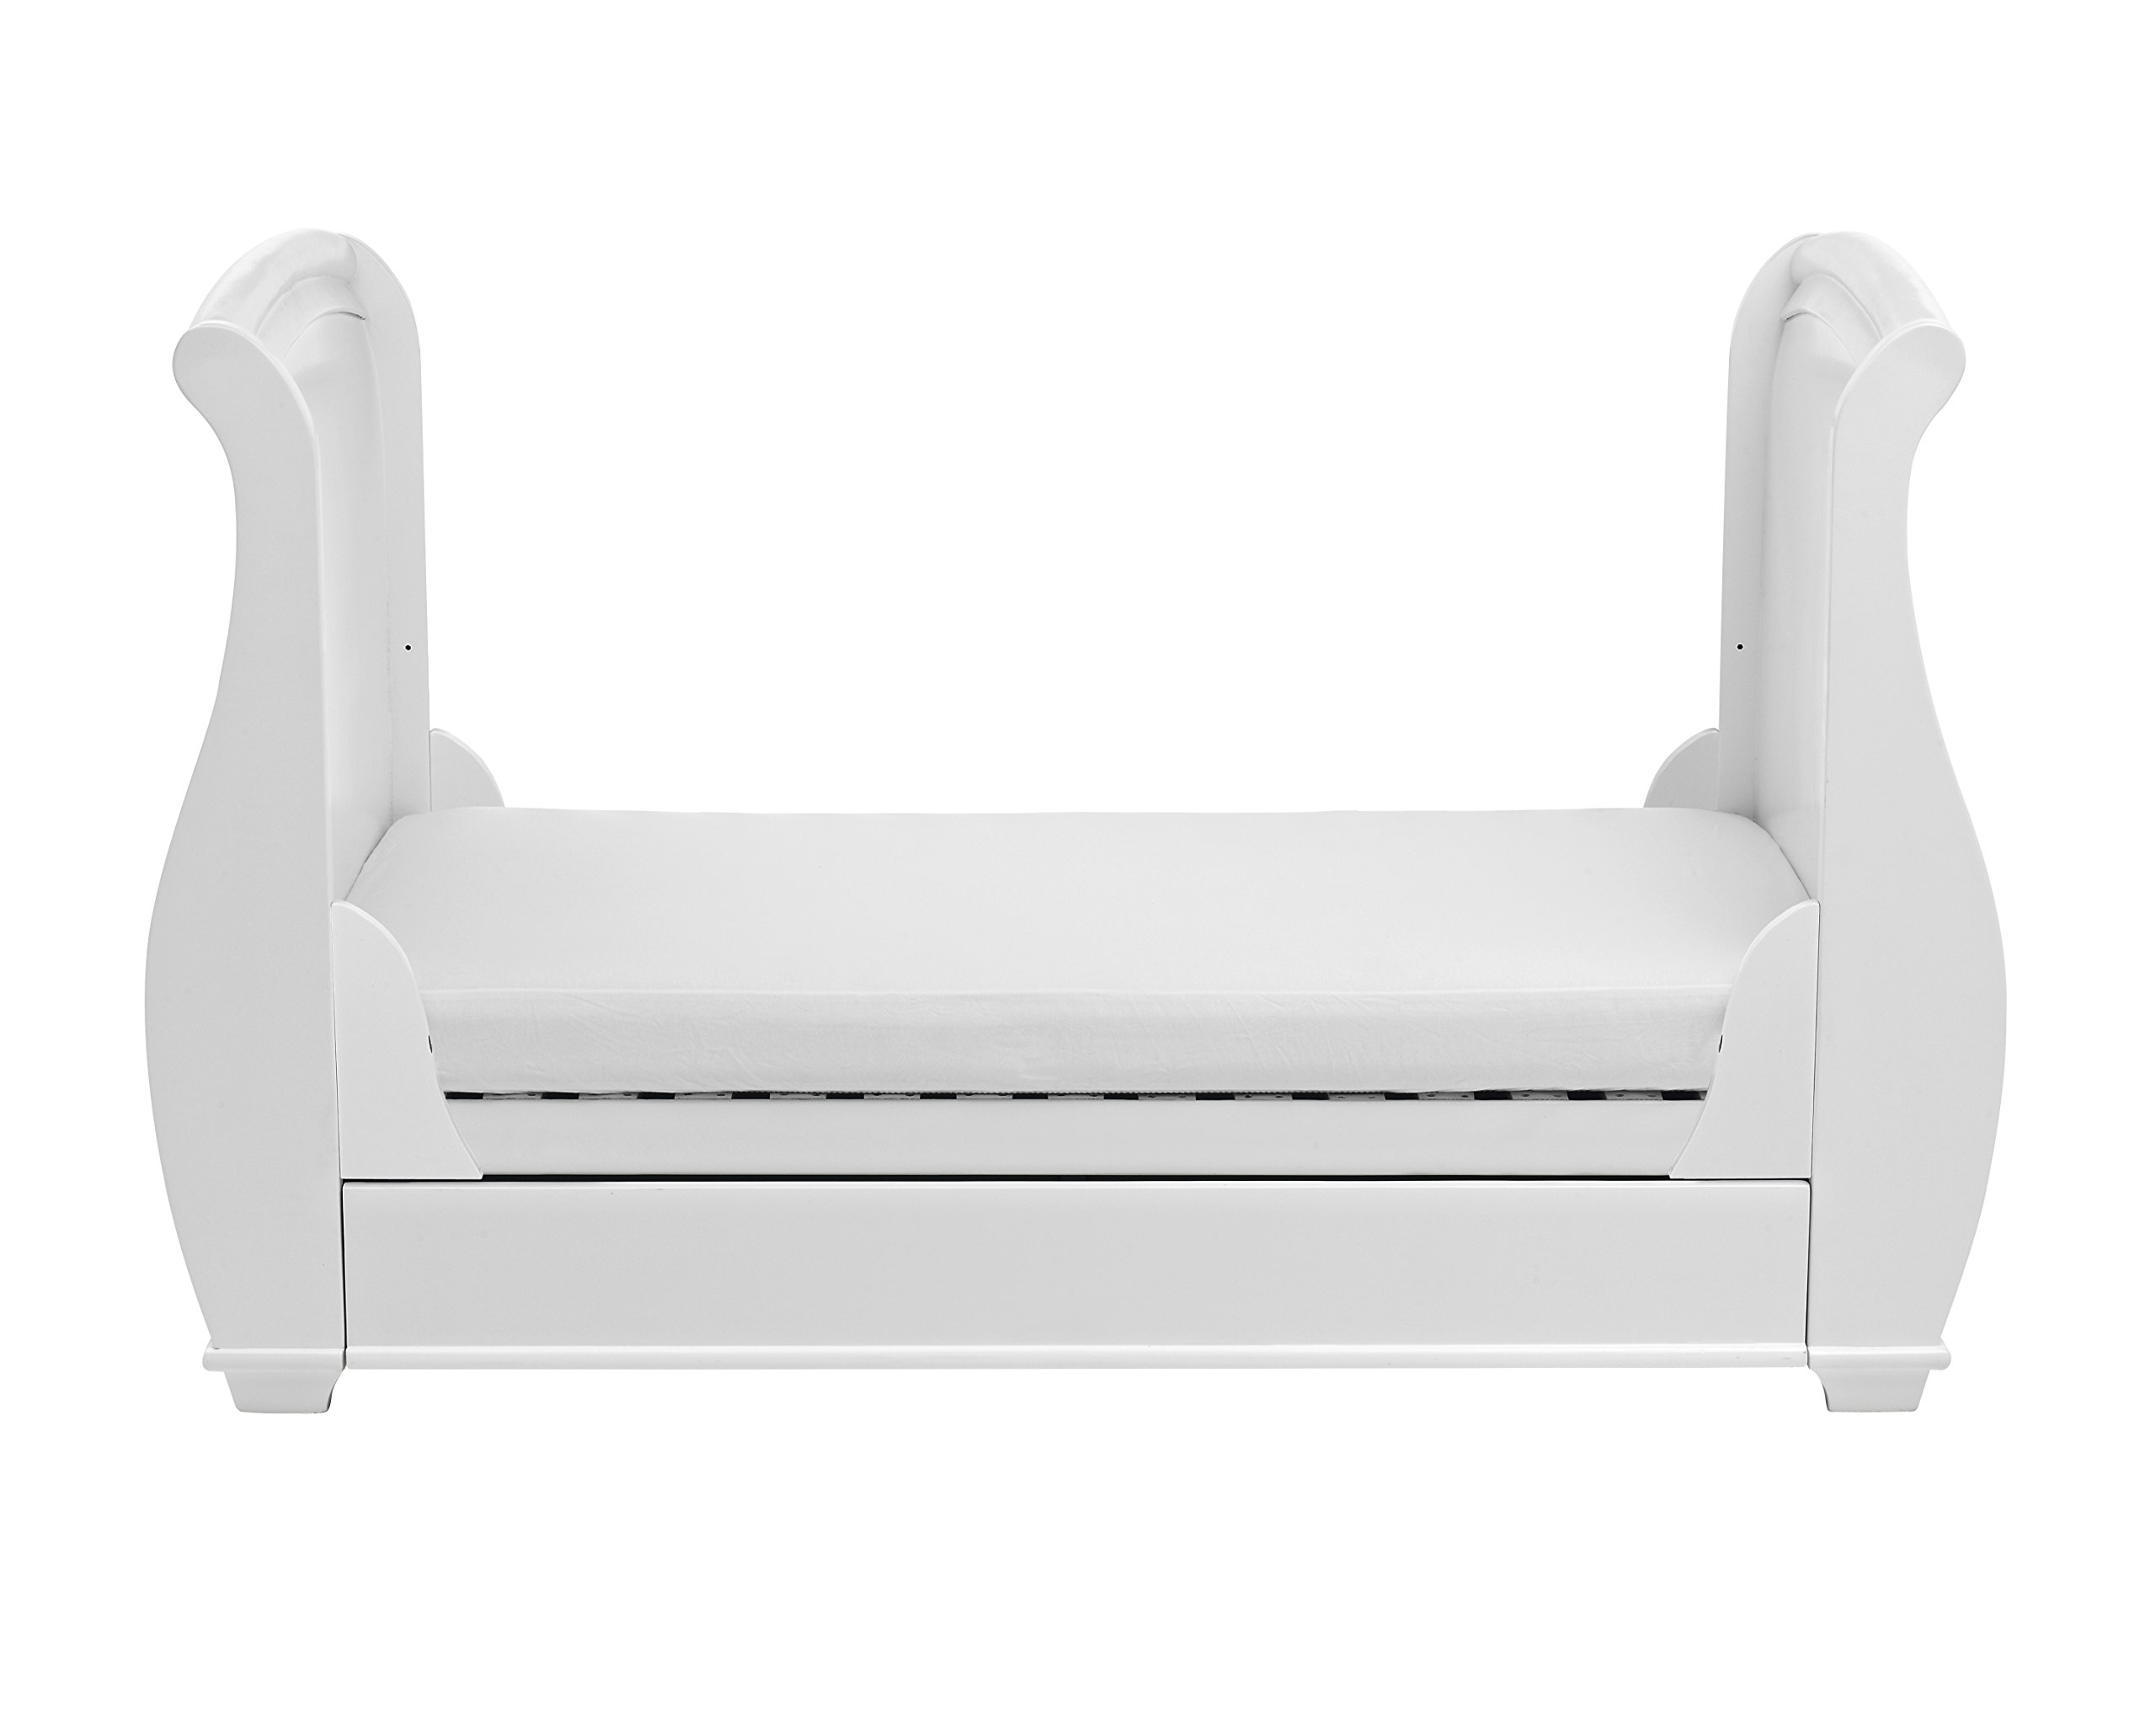 Babymore Bel Sleigh Cot Bed Dropside with Drawer (White)  Magnificent sleigh with appealing look of grandeur and solidity. Easily convert to junior bed/sofa/day bed, Meet British and European safety standards Single handed drop side mechanism allow easy access to your baby. 8